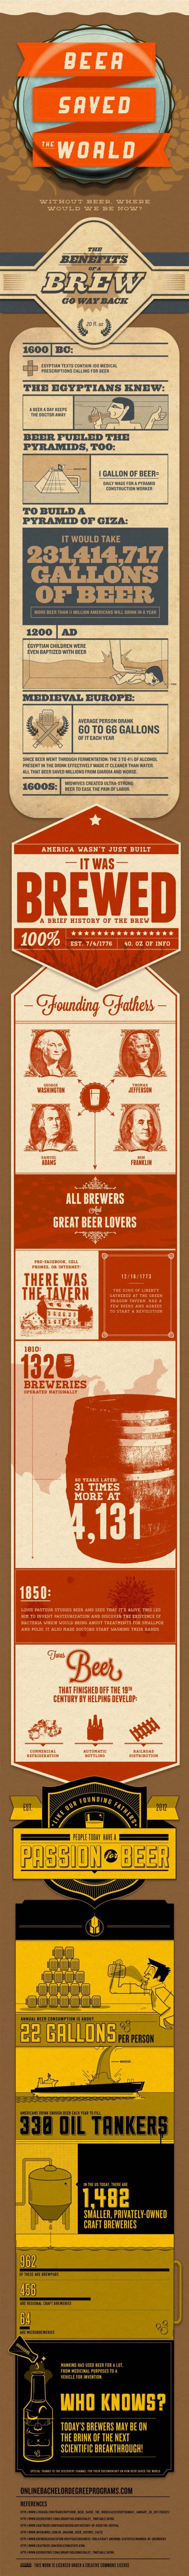 Beer Saved The World Infographic